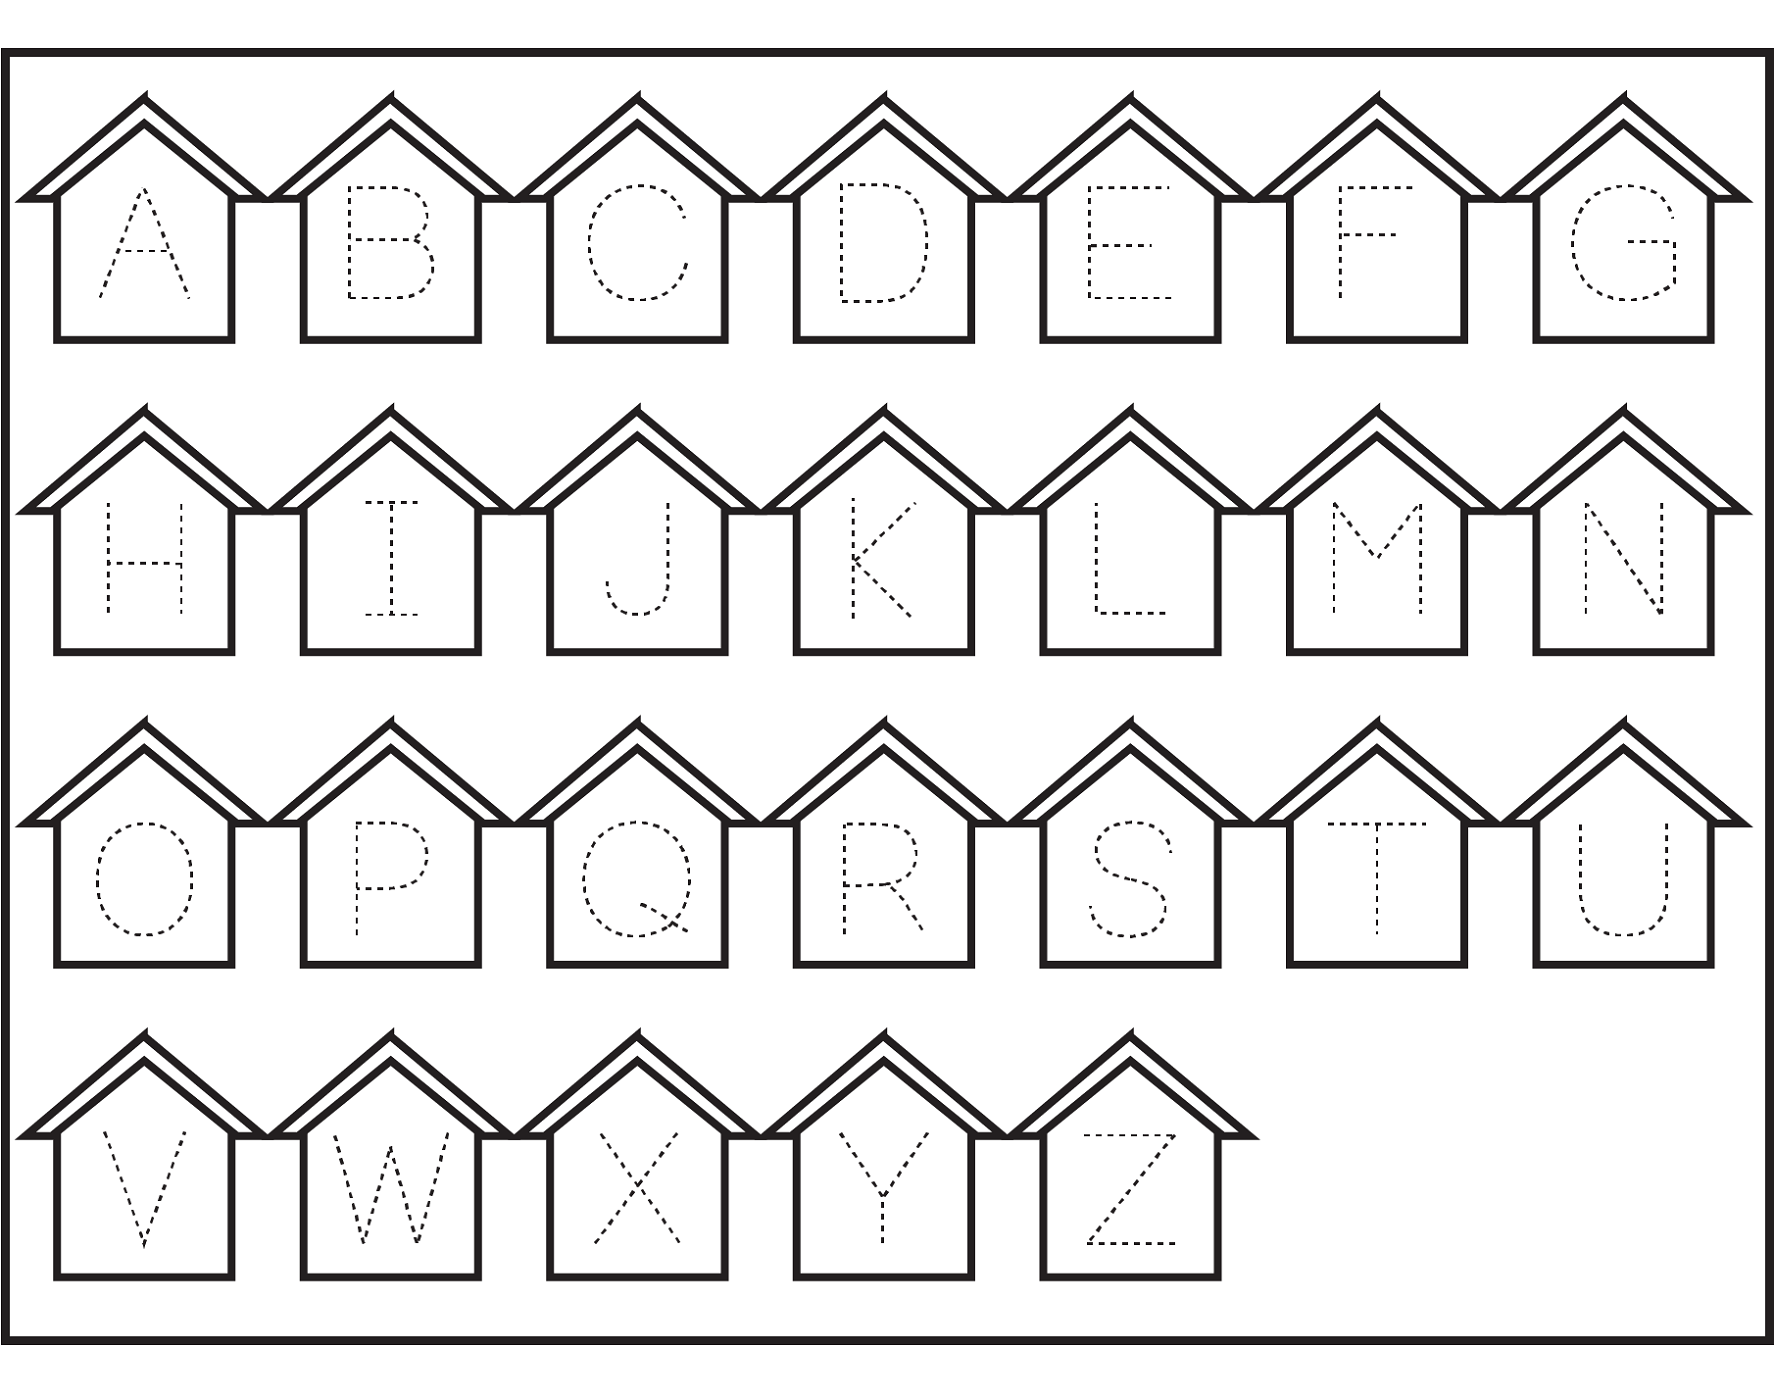 traceable letters worksheets for practice